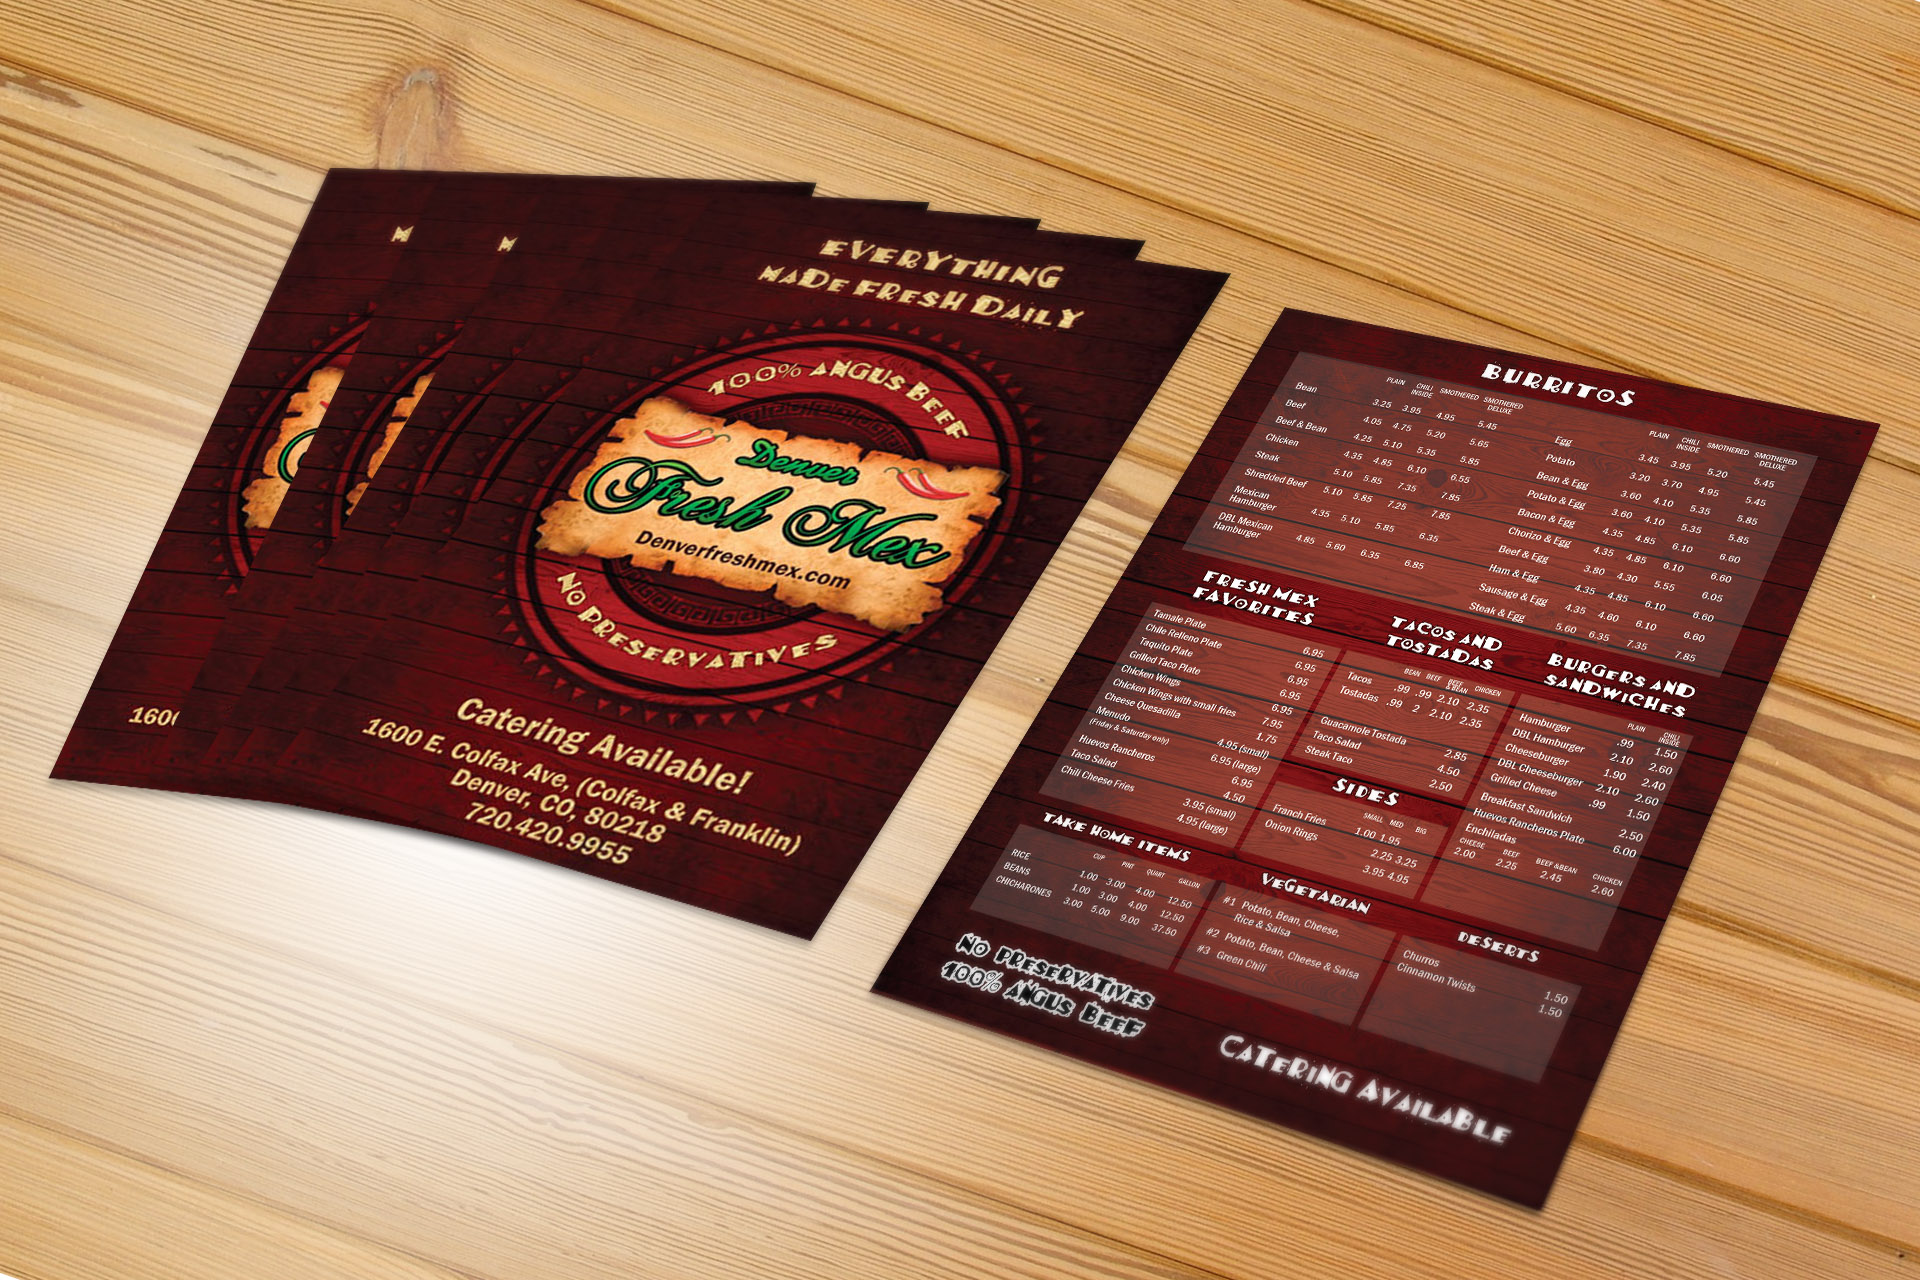 Menu Printing - New York City, NYC, Manhattan, The Bronx, Brooklyn, Queens, Staten Island, New York, NY